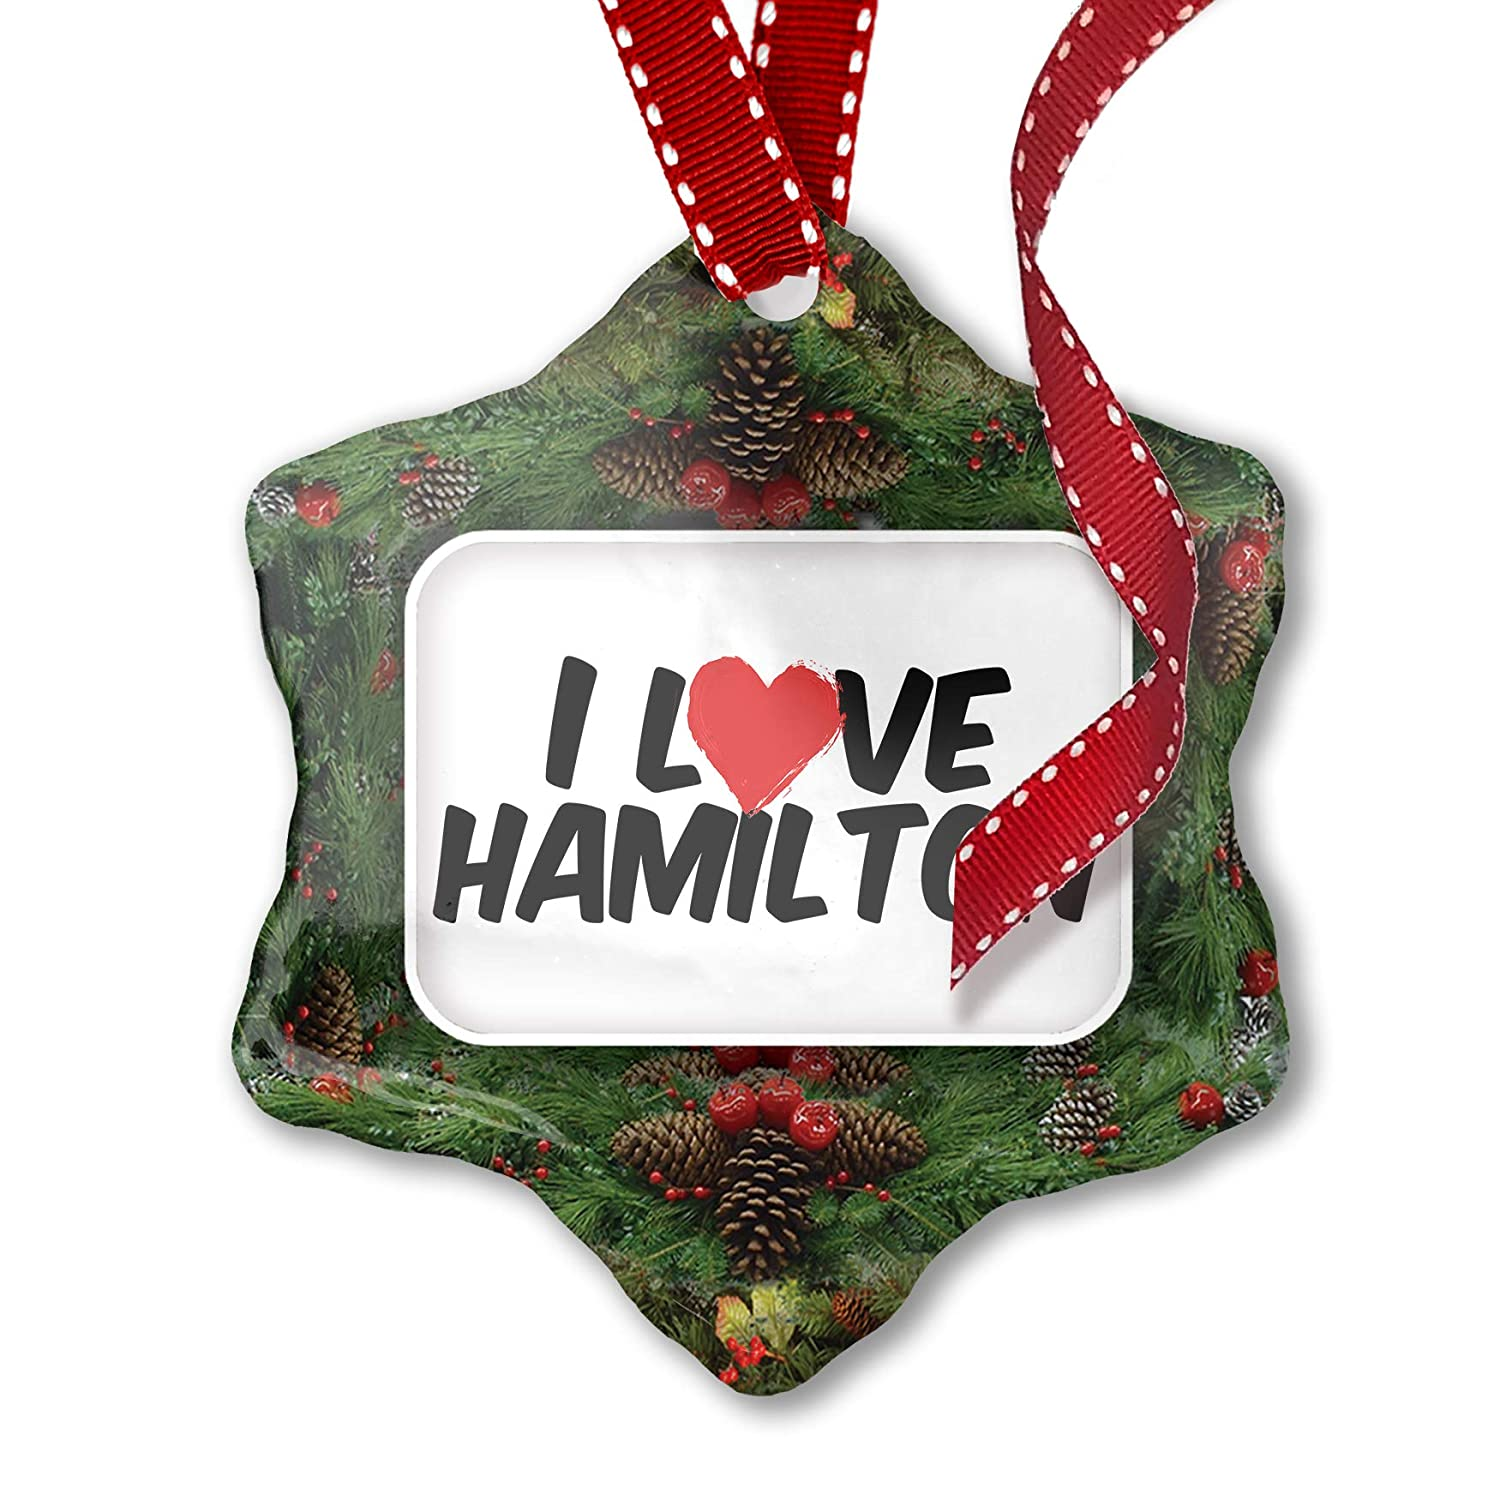 Hamilton Christmas Ornament.Amazon Com Neonblond Christmas Ornament I Love Hamilton